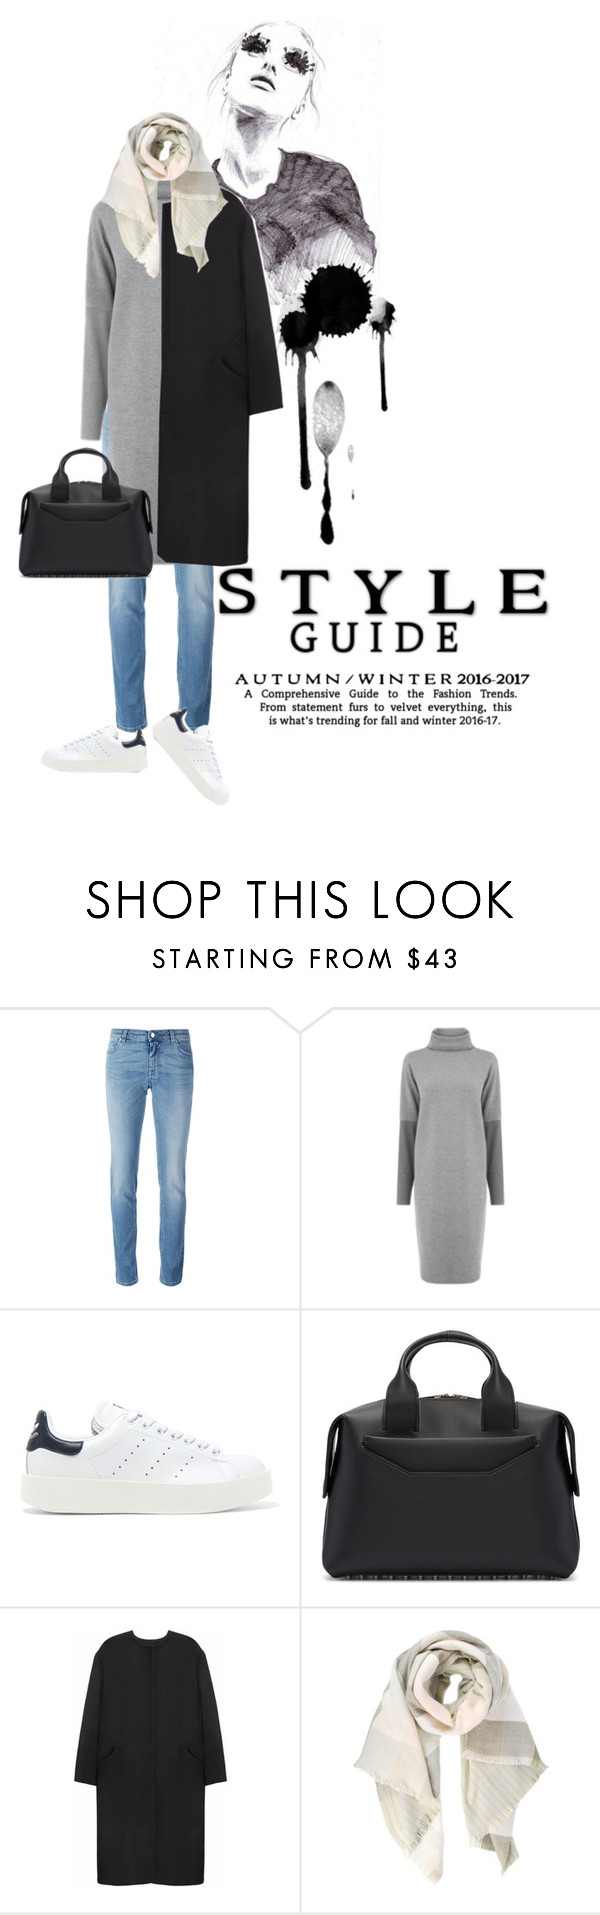 """TEACHER"" by www-som ❤ liked on Polyvore featuring GE, Givenchy, Warehouse, adidas Originals, Alexander Wang, Non and Michael Stars"